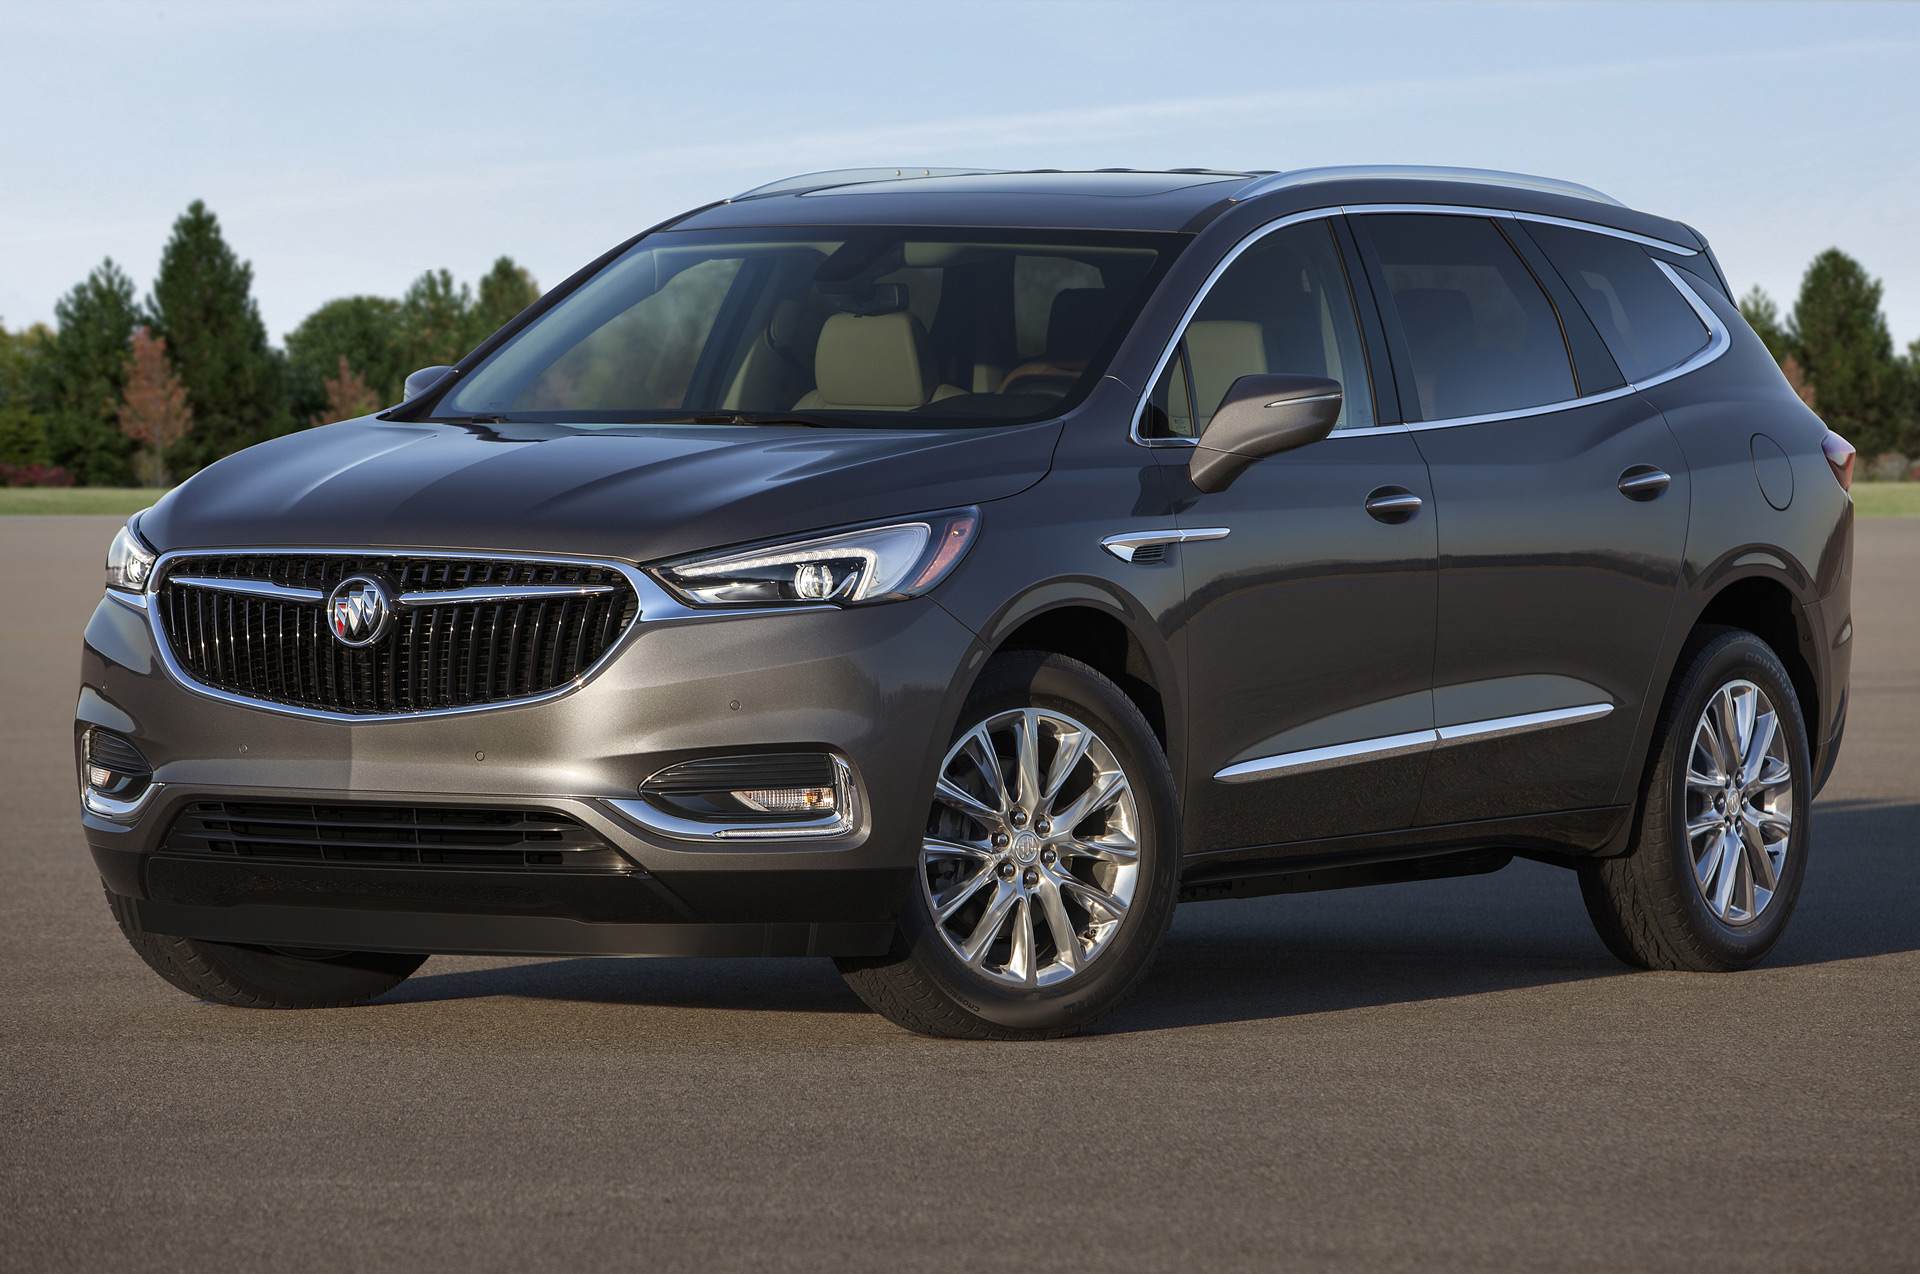 2018 buick enclave review ratings specs prices and photos the car connection. Black Bedroom Furniture Sets. Home Design Ideas